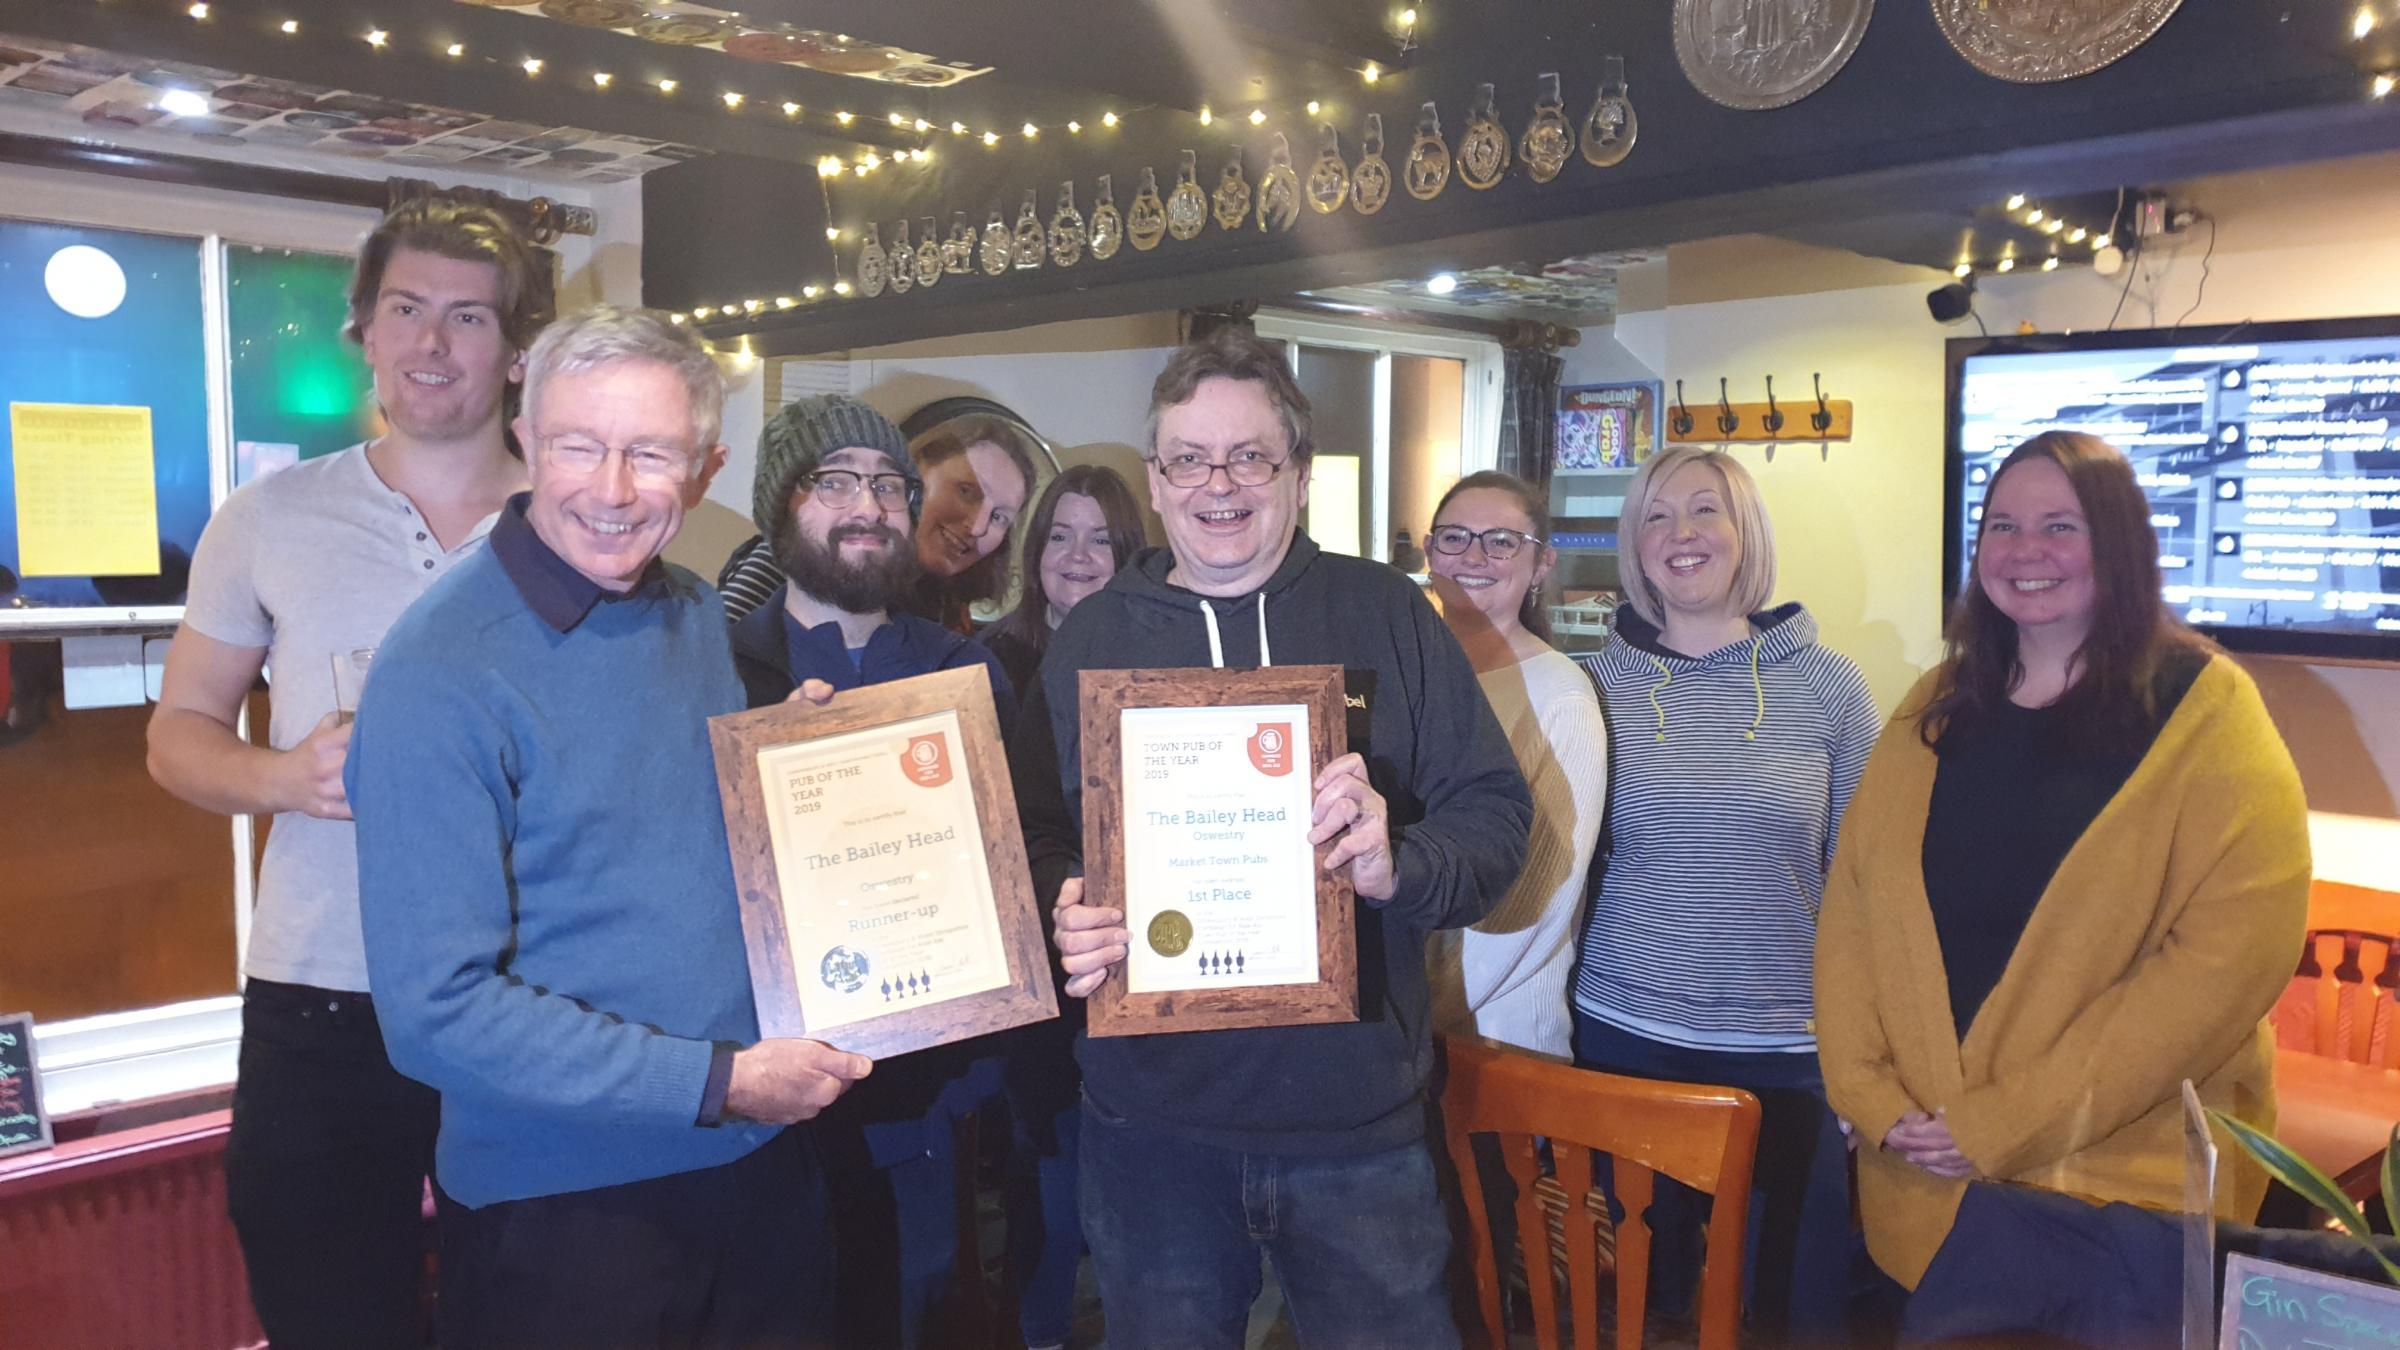 Duncan Borrowman (right) being presented with Shrewsbury and West Shropshire CAMRA Market Towns Pub of the Year Winner and overall Pub of the Year runner up certificates by Dave Roll, Chair of Shrewsbury and West Shropshire CAMRA